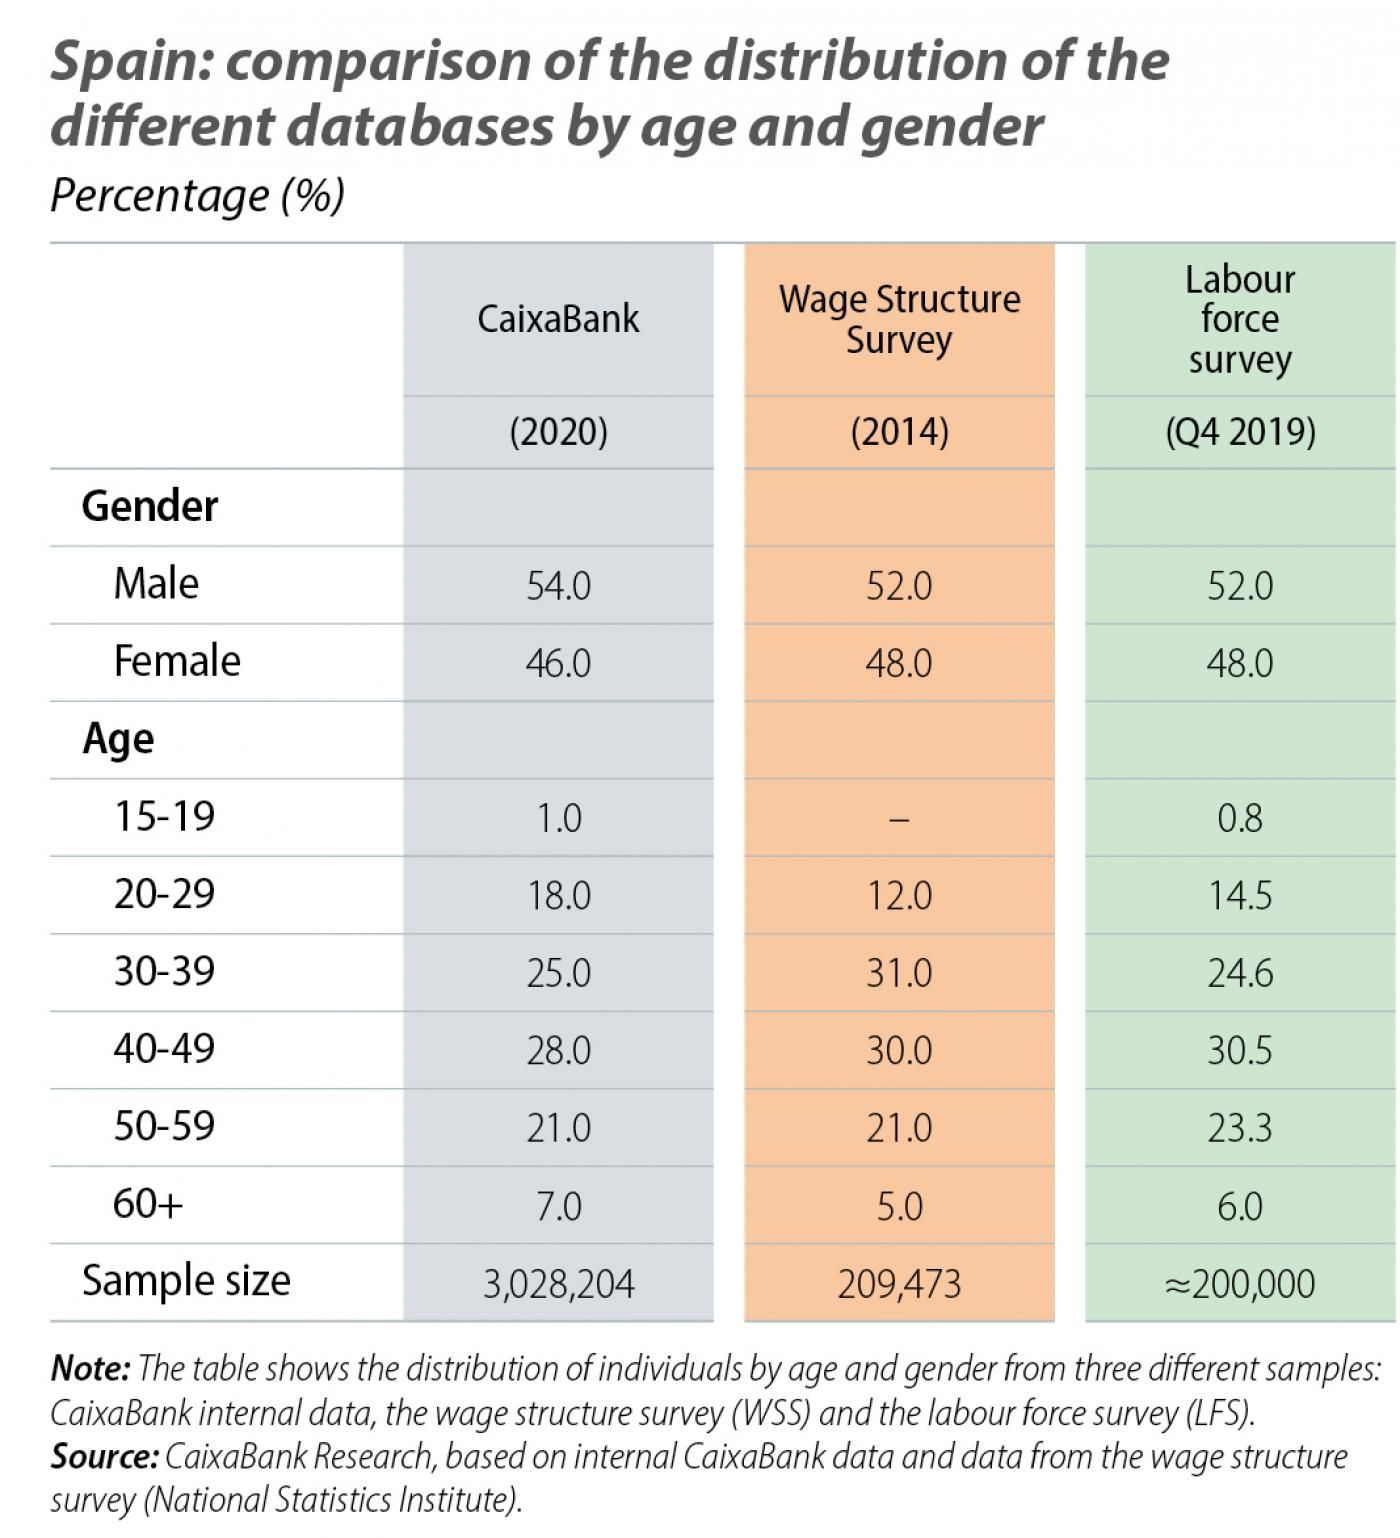 Spain: comparison of the distribution of the different databases by age and gender